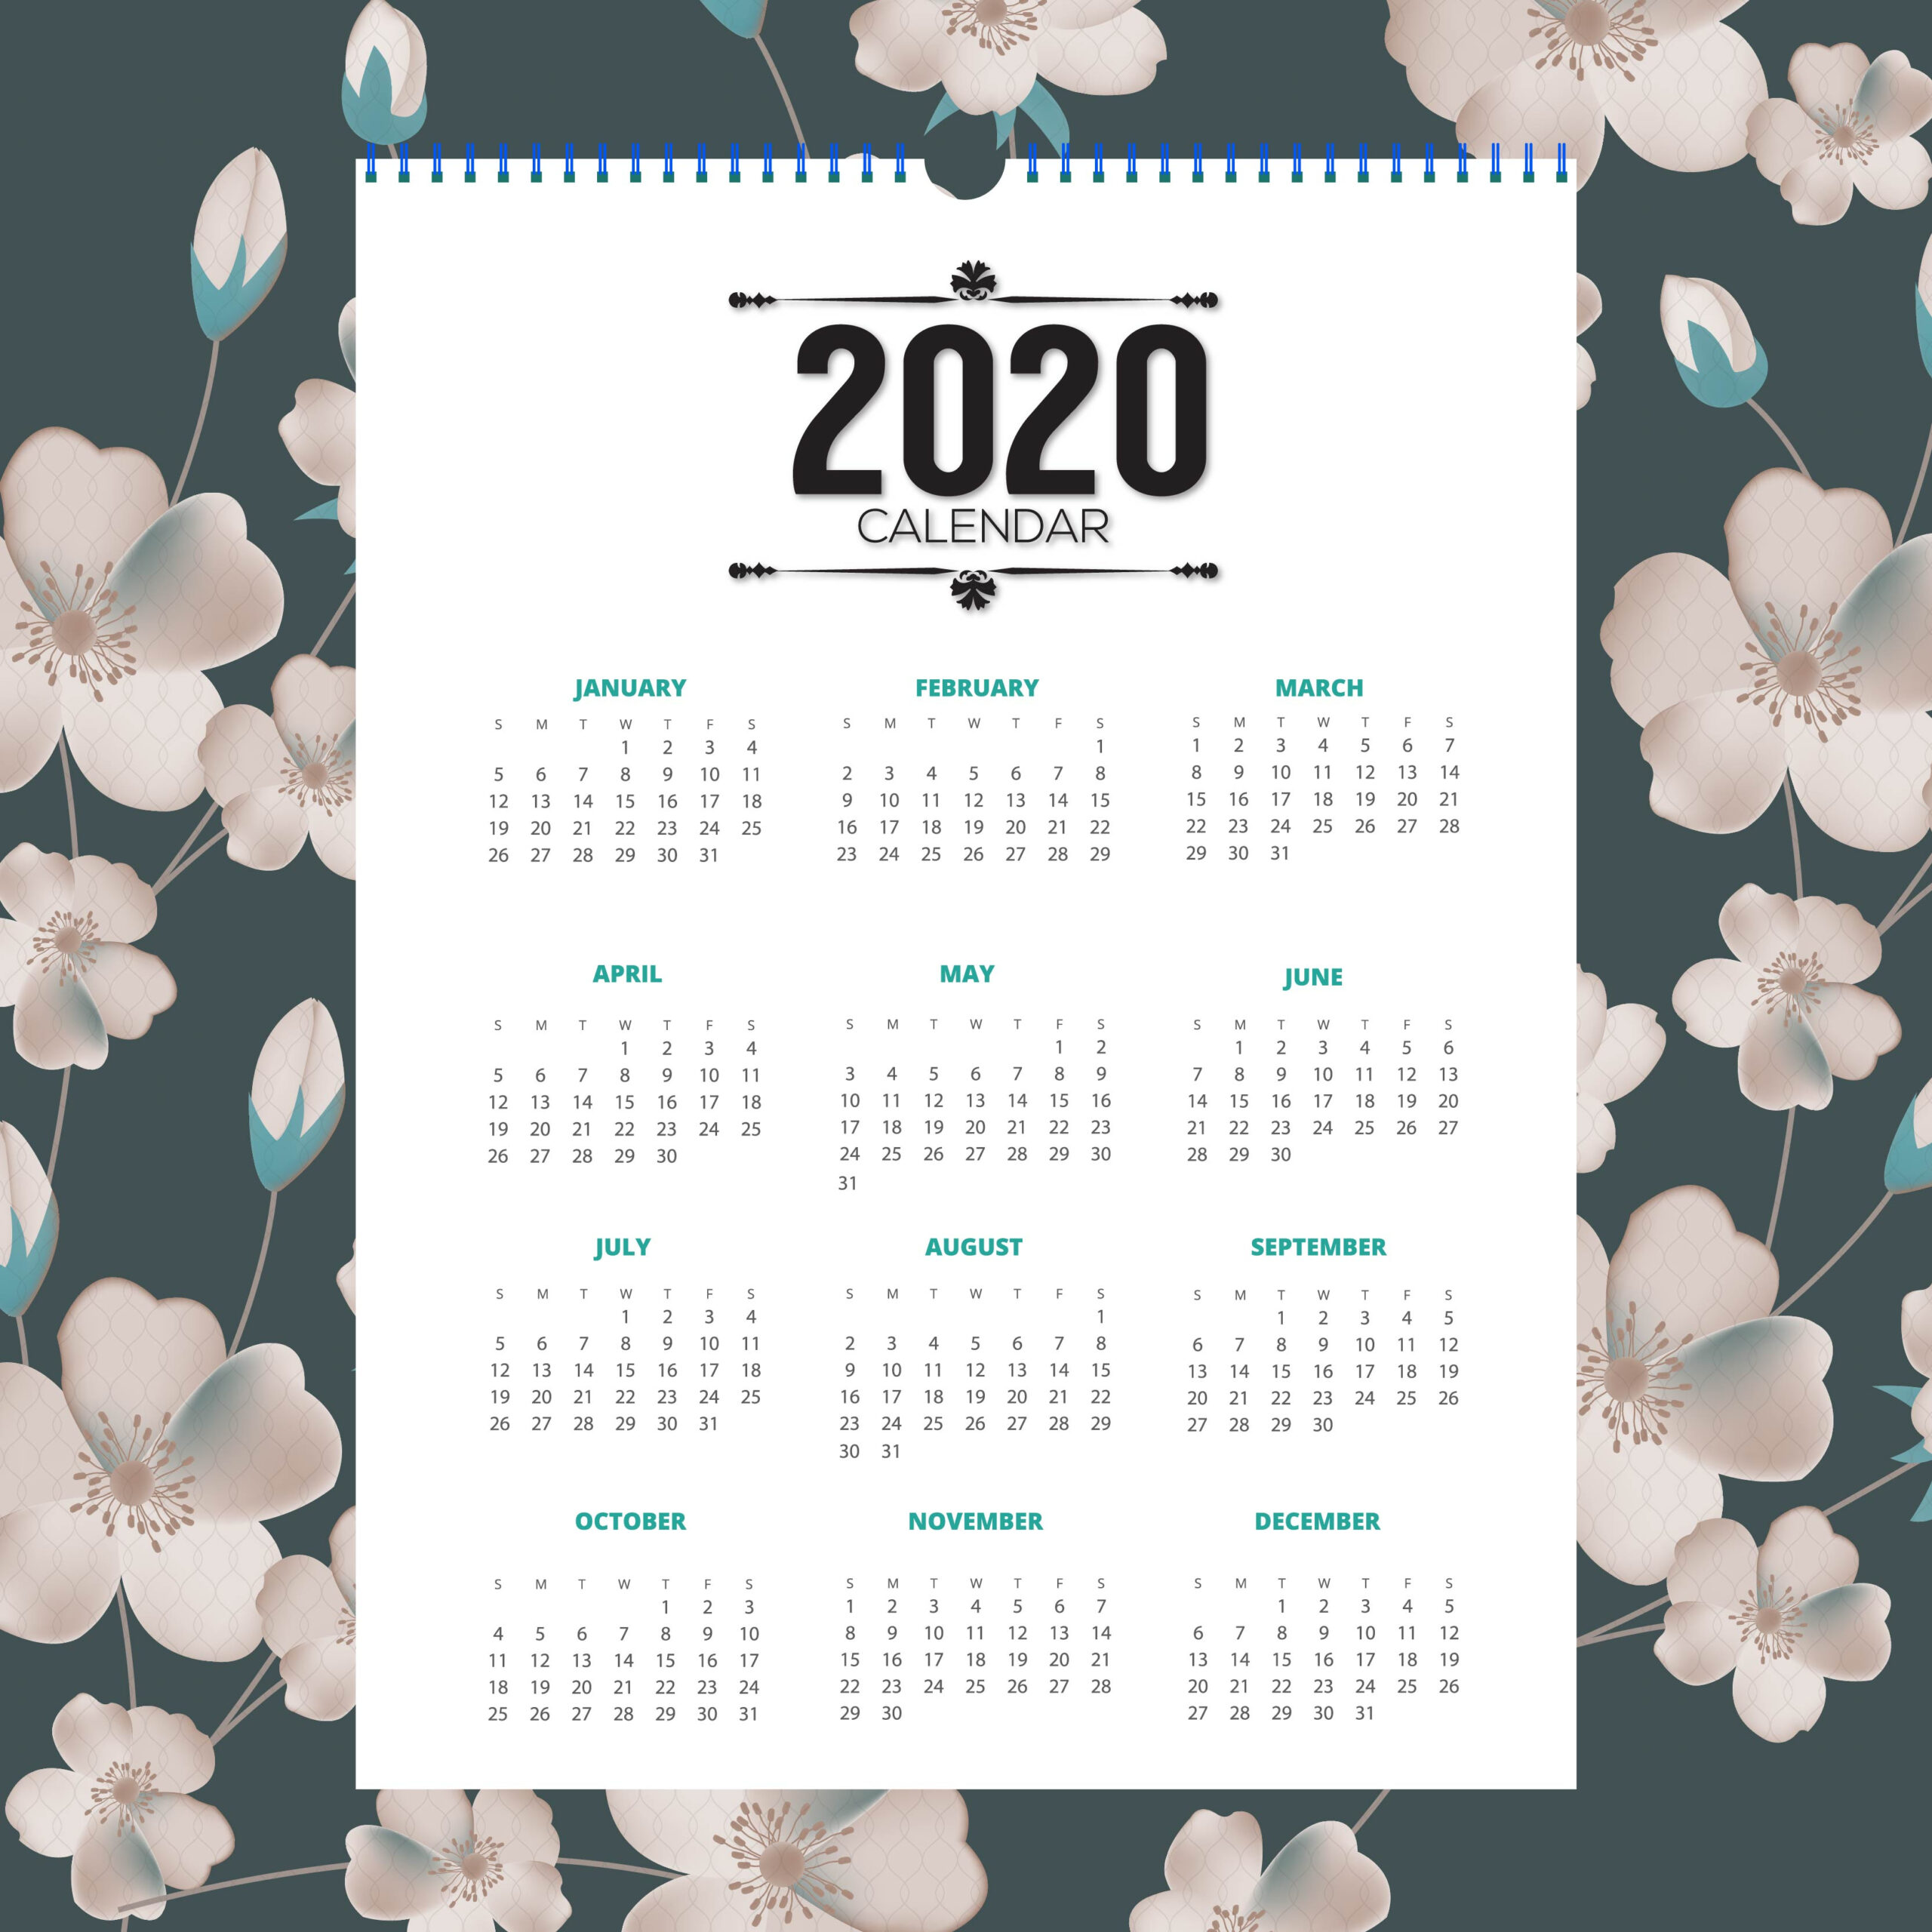 2020 Floral Calendar Design - Download Free Vectors, Clipart with regard to Tropical Floral: Calendar 2021 Monthly